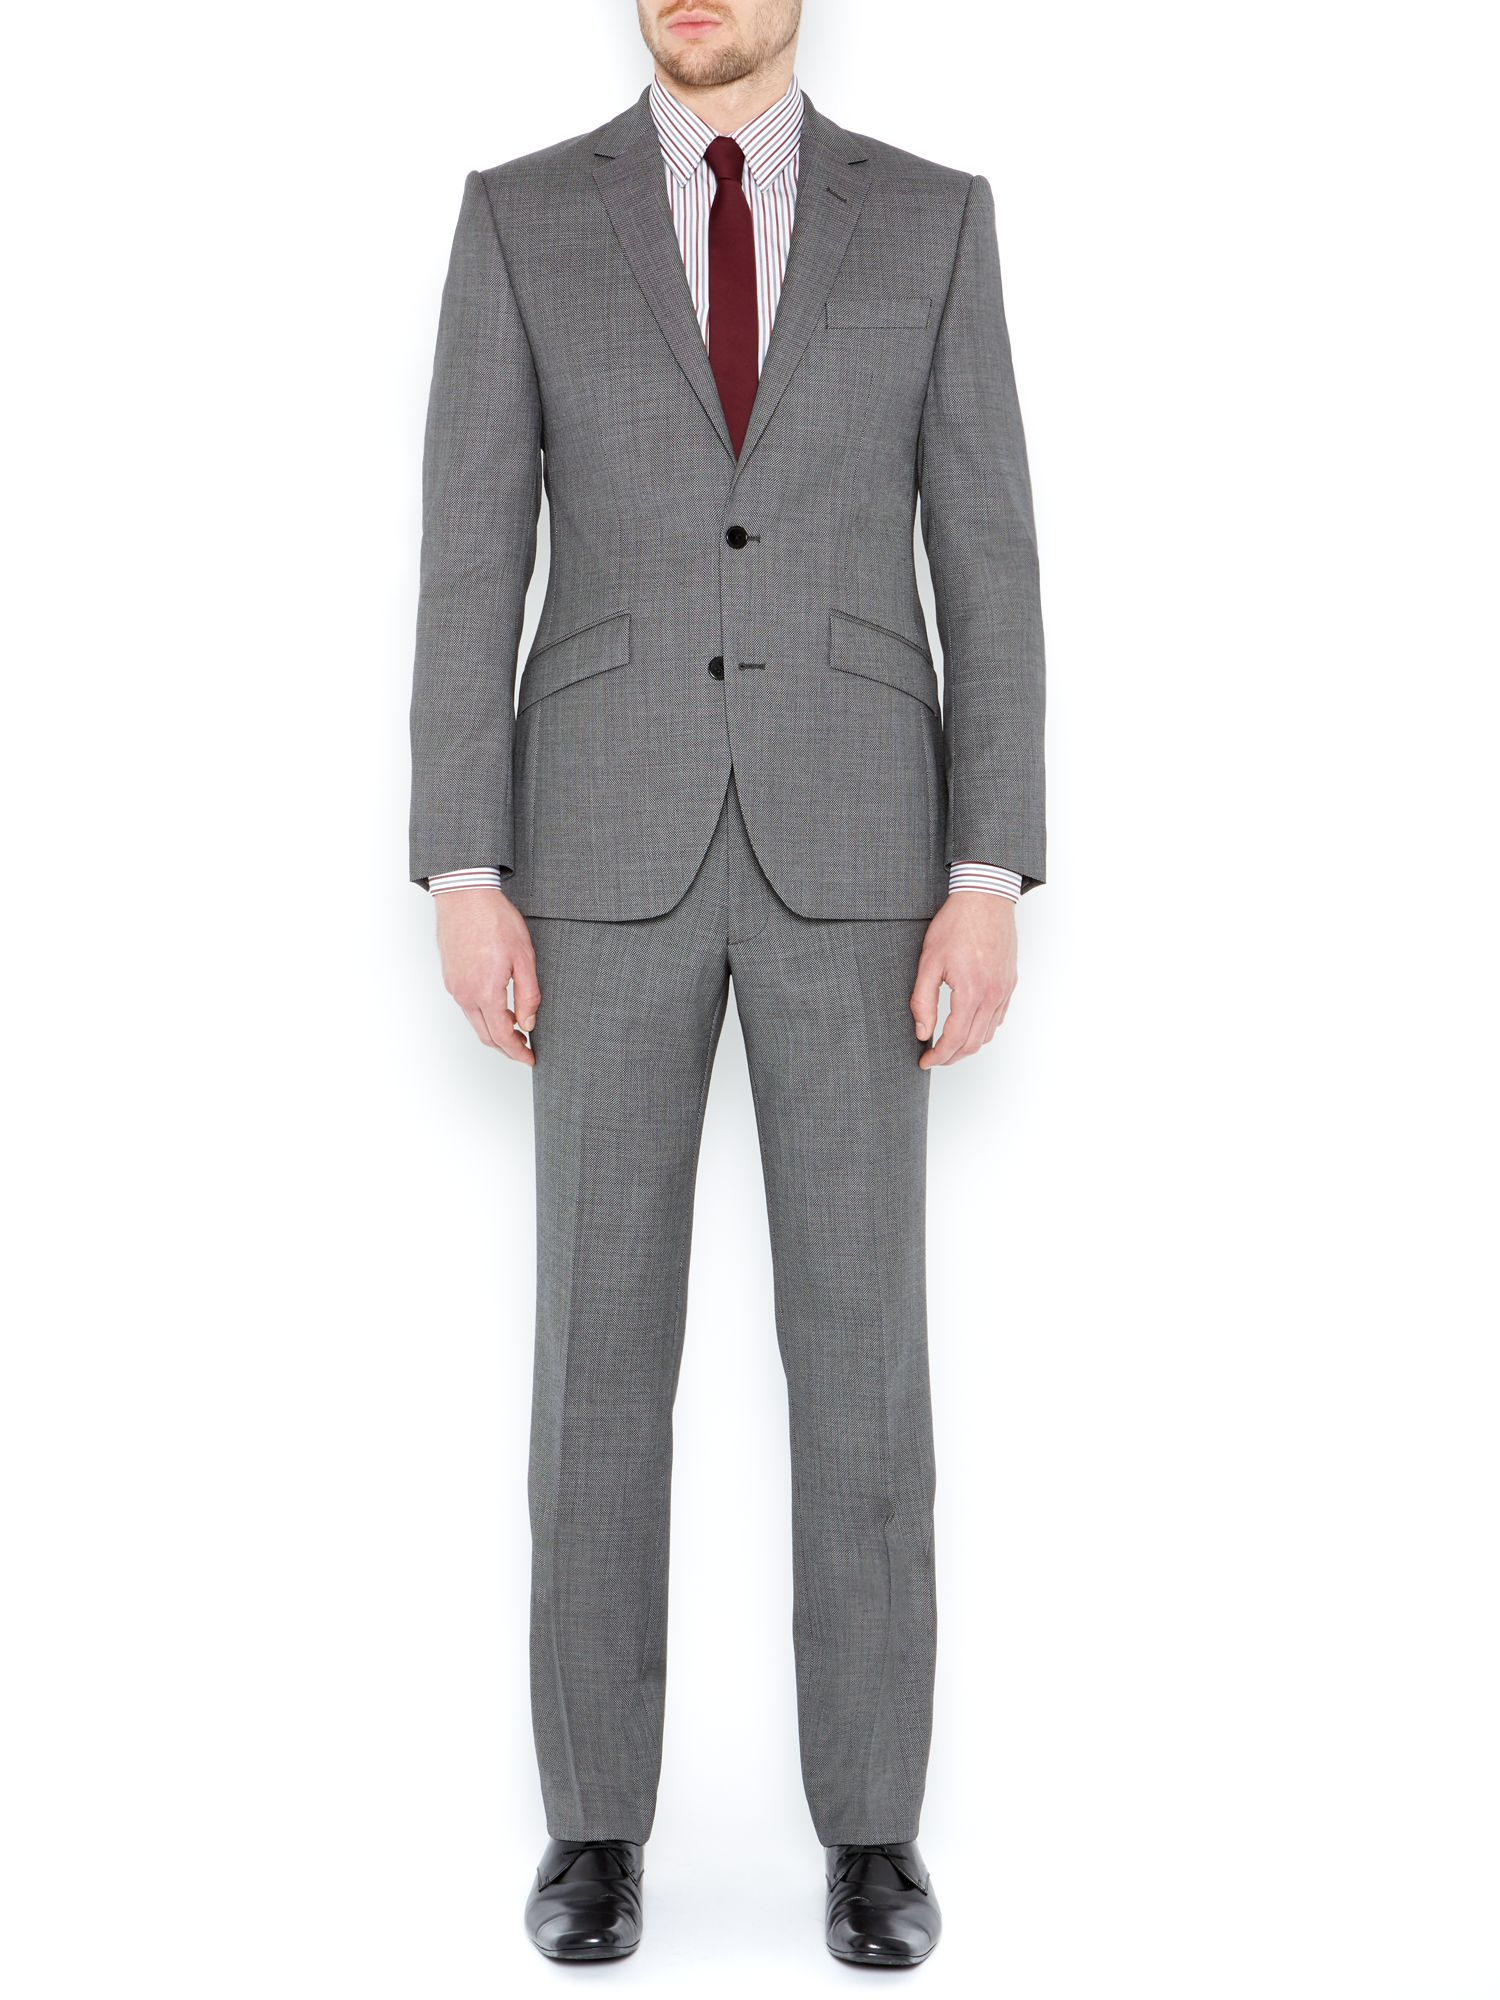 Waverley Birdseye Suit Jacket